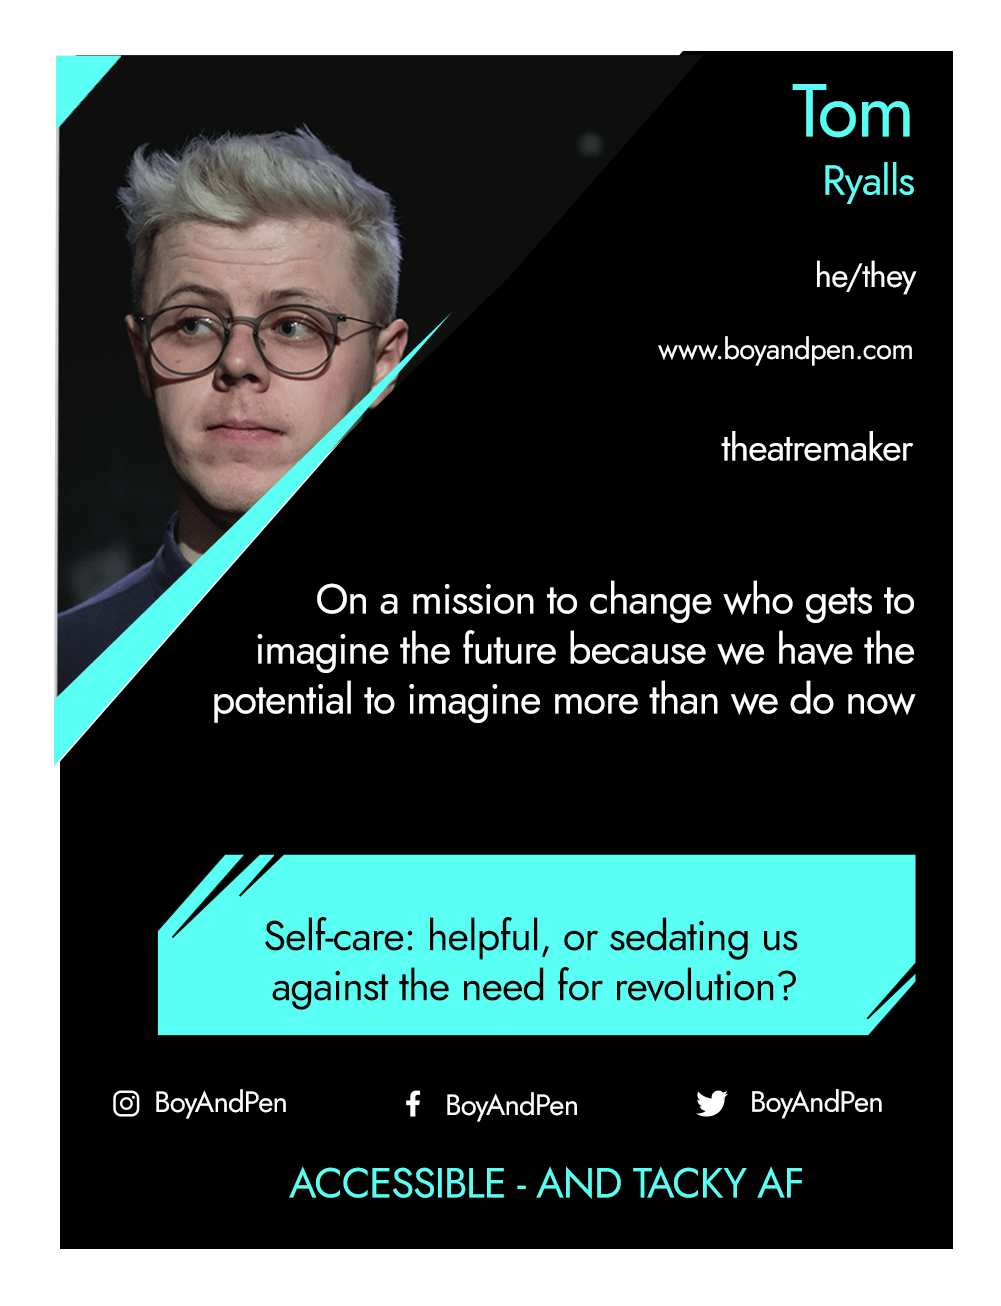 This is the front of an artist announcement card for Tom Ryalls. The design is styled on an American baseball card. The card has a thin white border and the rest of the card is black with turquoise accents. On the left hand corner, there is a triangular cross section of a photo of Tom Ryalls. In it, Tom is standing on stage, he is a caucasian boy with short-ish white hair. He is wearing round, plastic blue glasses and a black buttoned up polo shirt. To the right of the photo, there is the artist's name, Tom Ryalls, pronouns, he/they, website, www.boyandpen.com, and artistic practice, theatremaker. Below this is a short artist biography, which reads on a mission to change who gets to imagine the future because we have the potential to imagine more than we do now. In a turquoise rectangle below this, the card highlights what the artist's role is within CRIPtic. For Tom Ryalls this reads selfcare: helpful, or sedating us against the need for revolution?. Below this are the artist's social media handles @BoyAndPen, and a quote selected by the artist. This reads: Accessible - and tacky af.